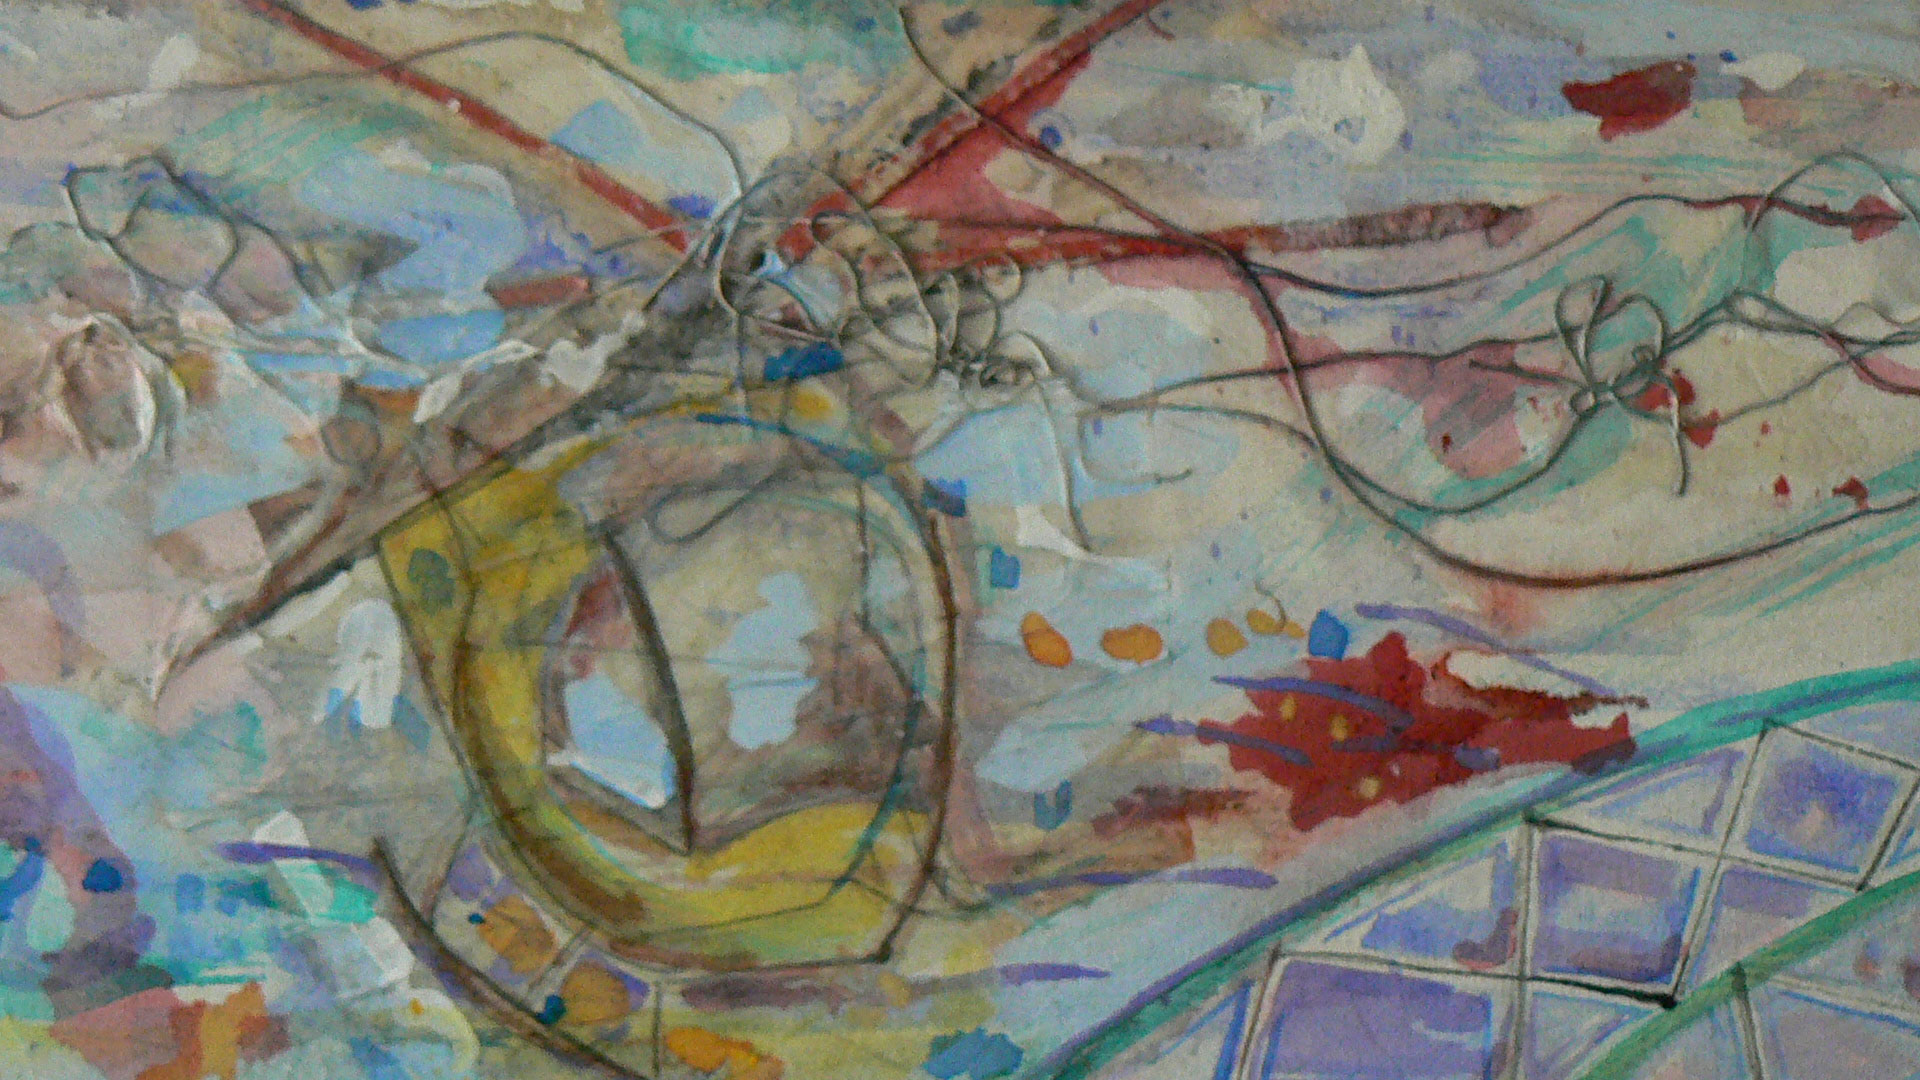 Helicopter  A crylic on Canvas  Inset of That-a-Way